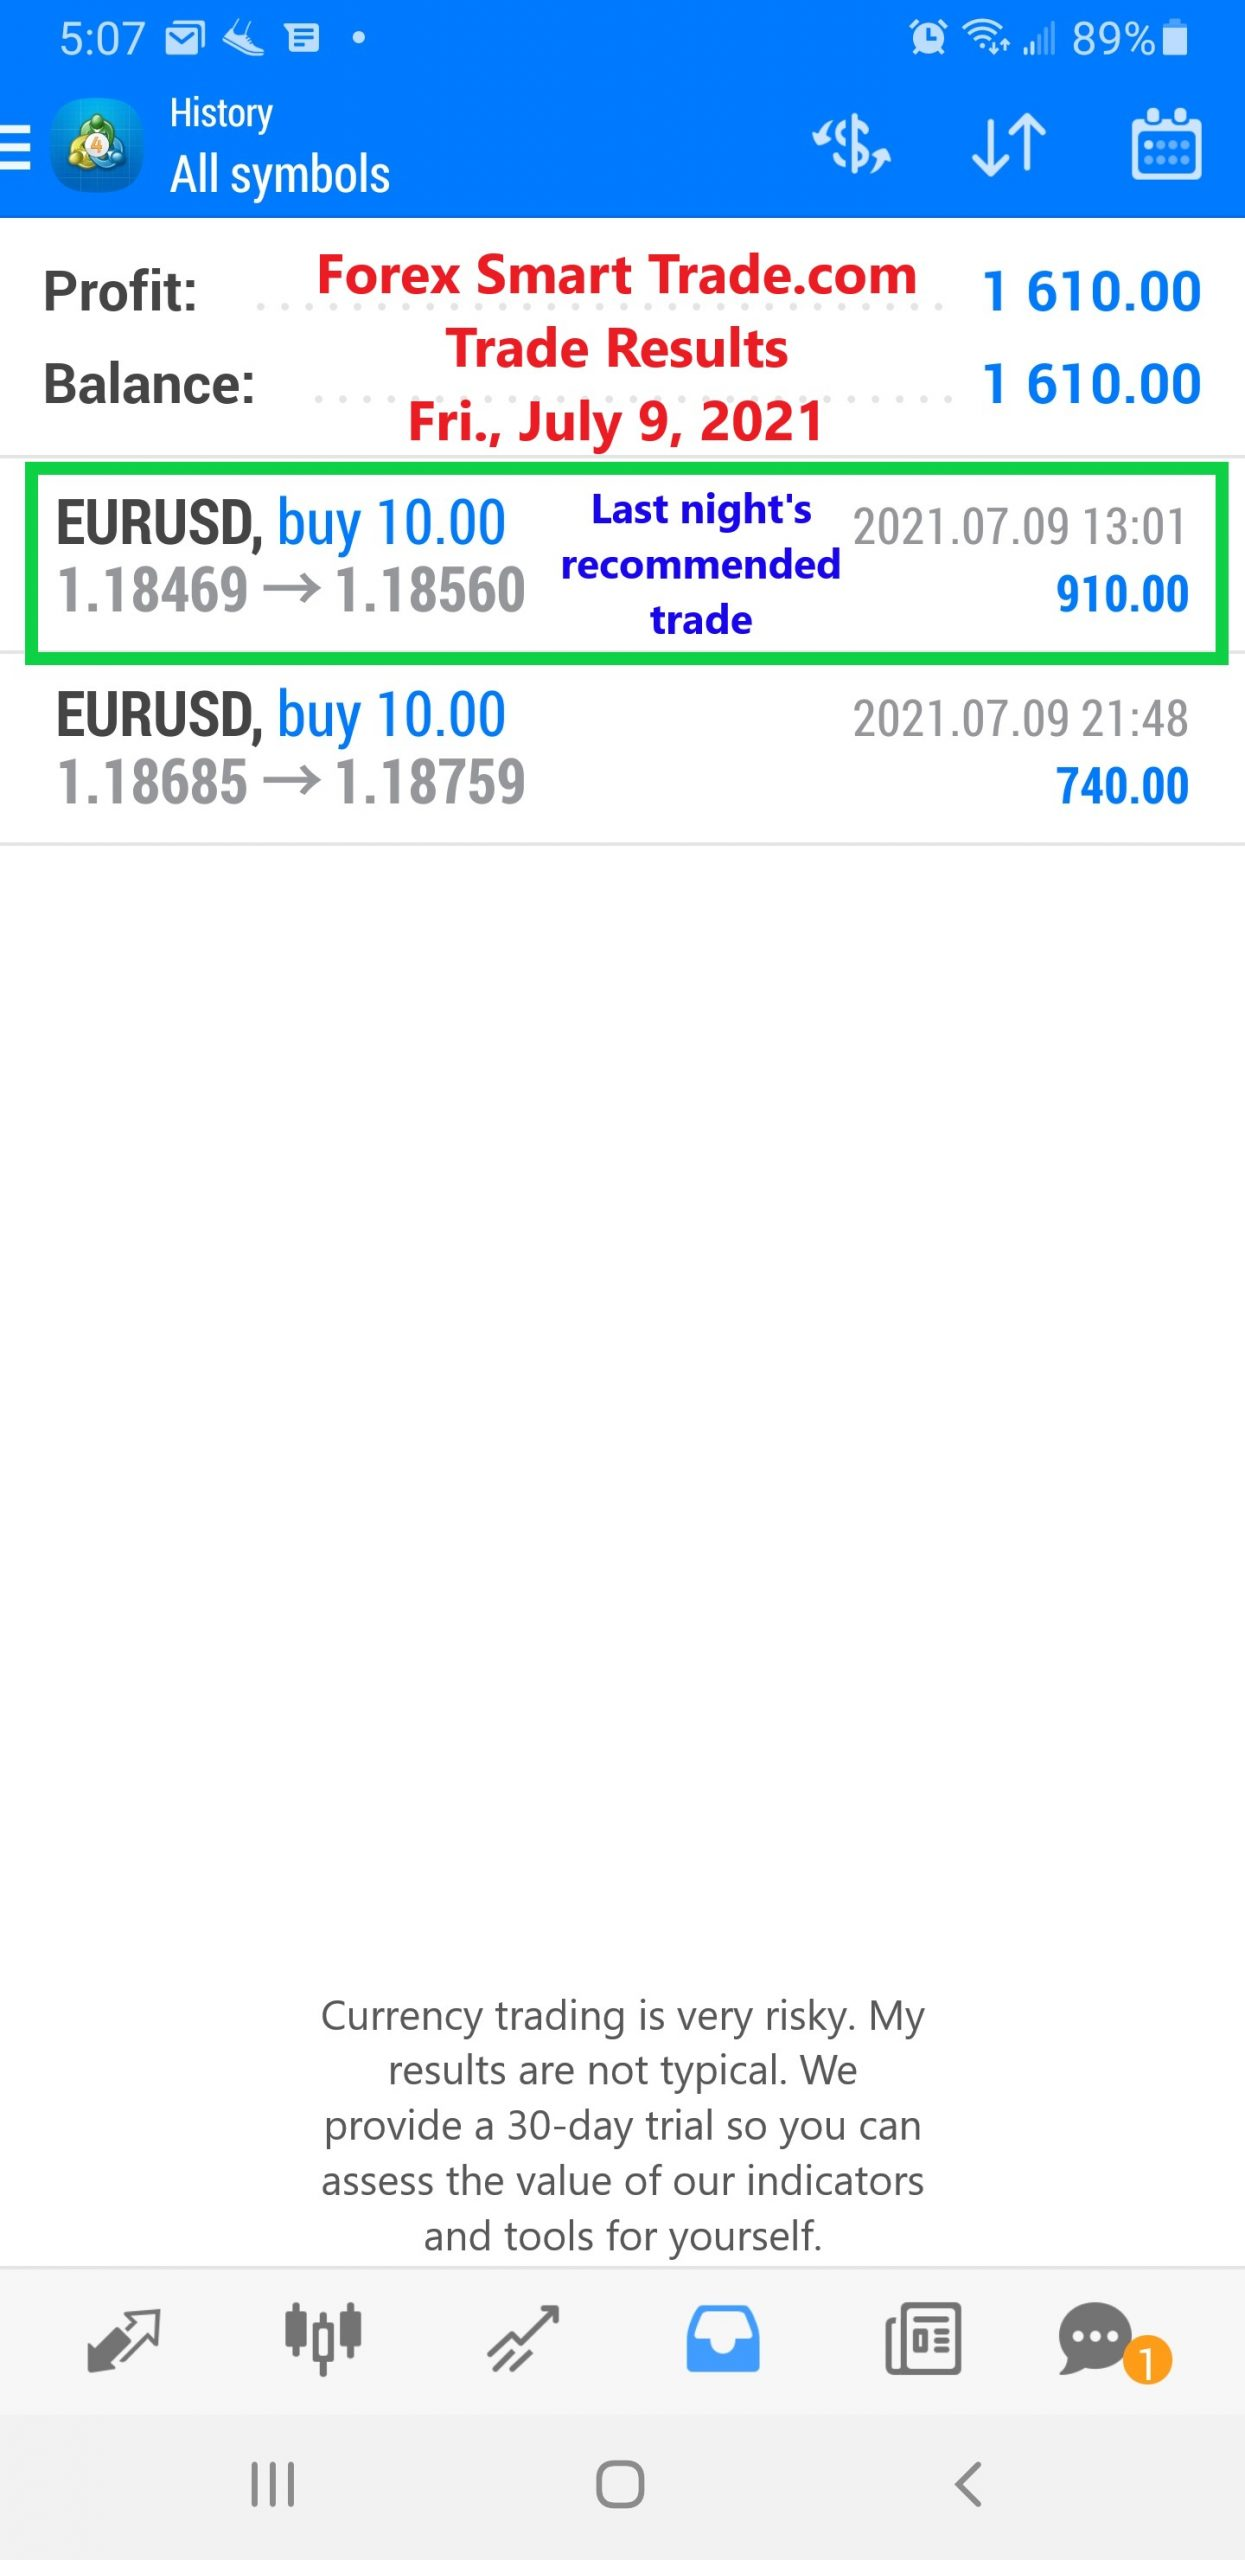 Forex Smart Trade Results July 9 2021